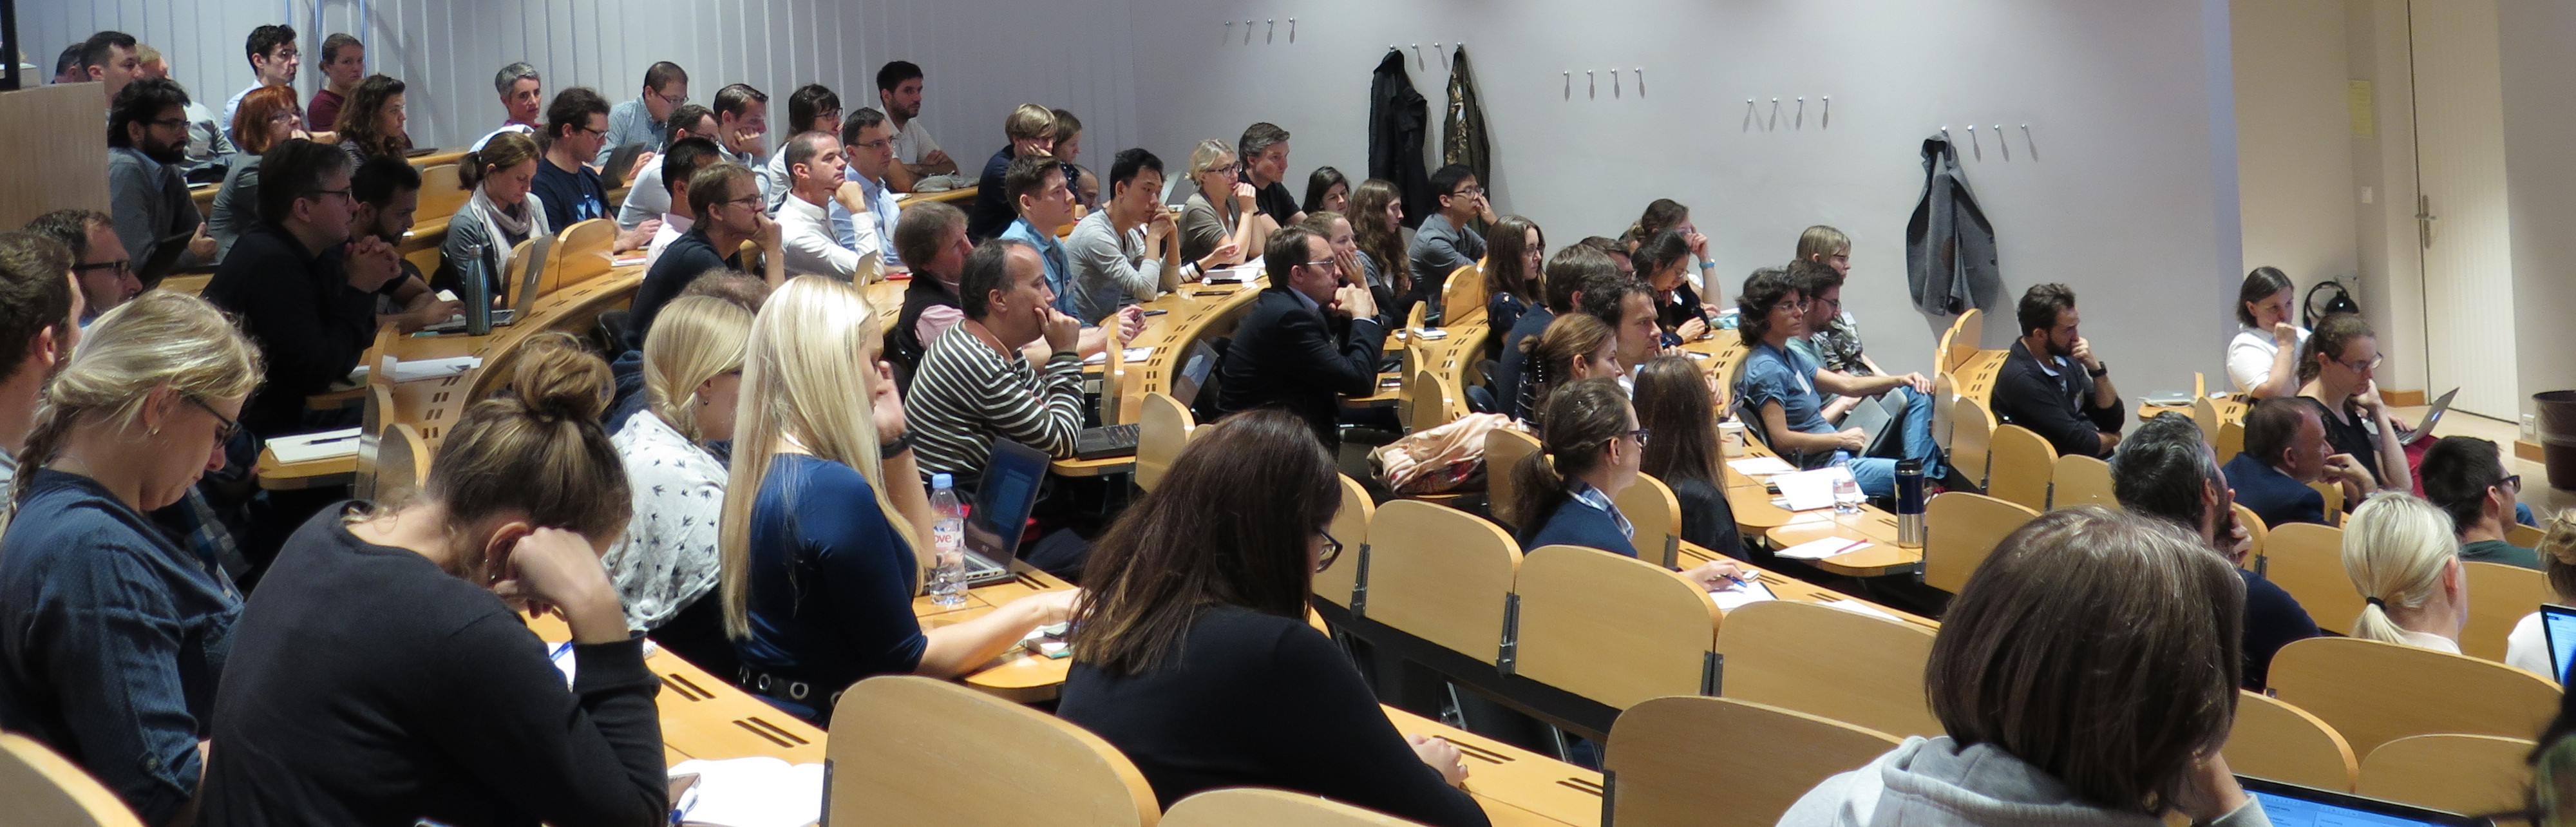 Audience of the Kickoff Workshop